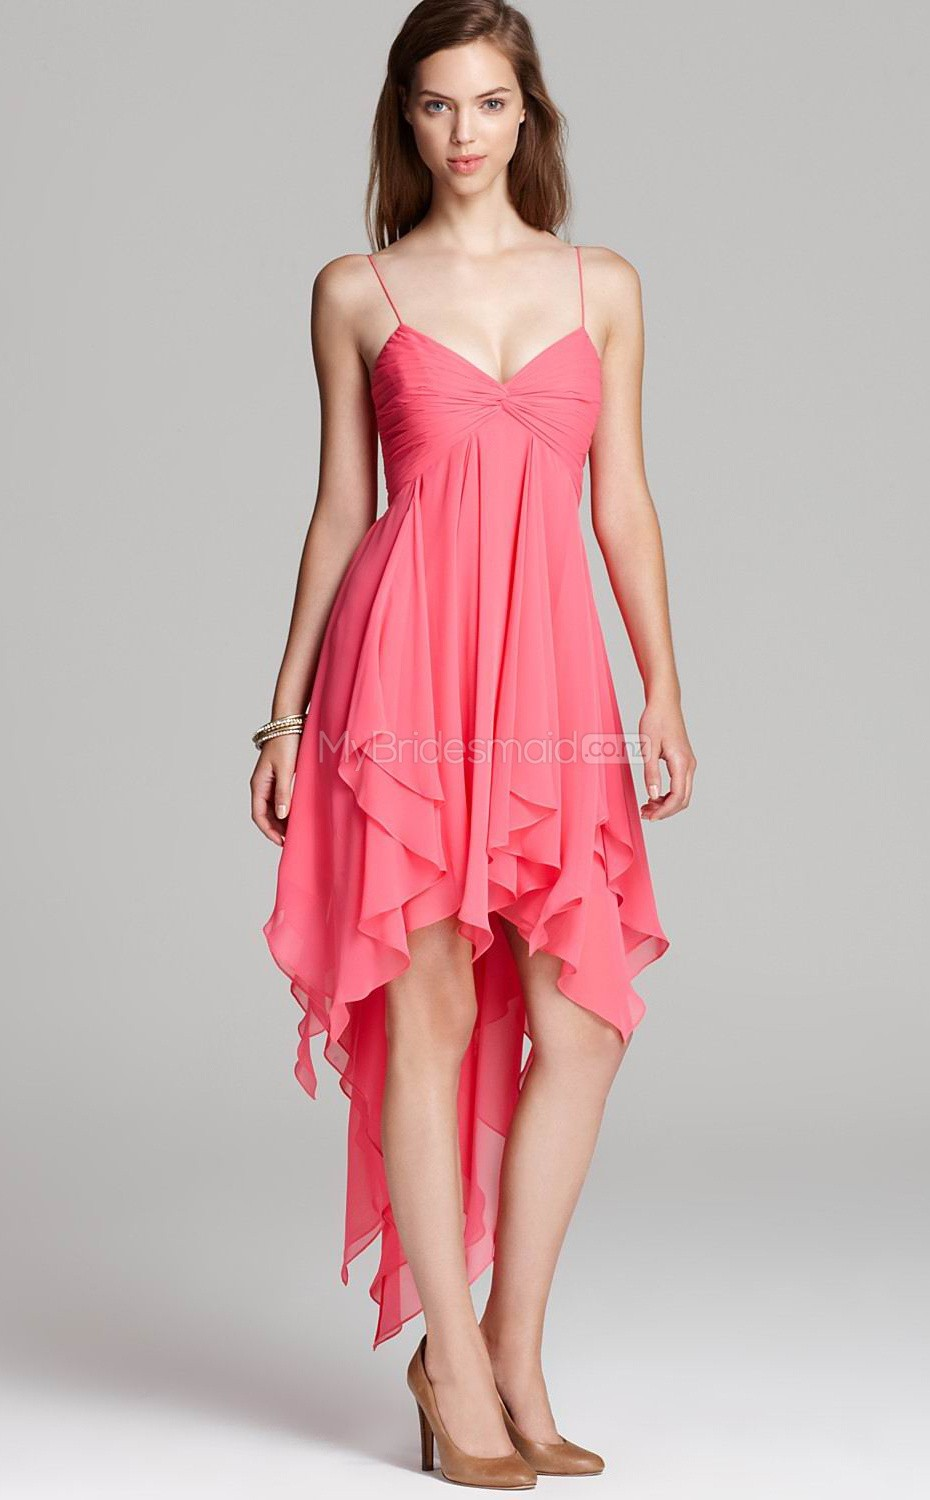 Candy Pink Chiffon A-line Straps Short Bridesmaid Dress For Beach ...